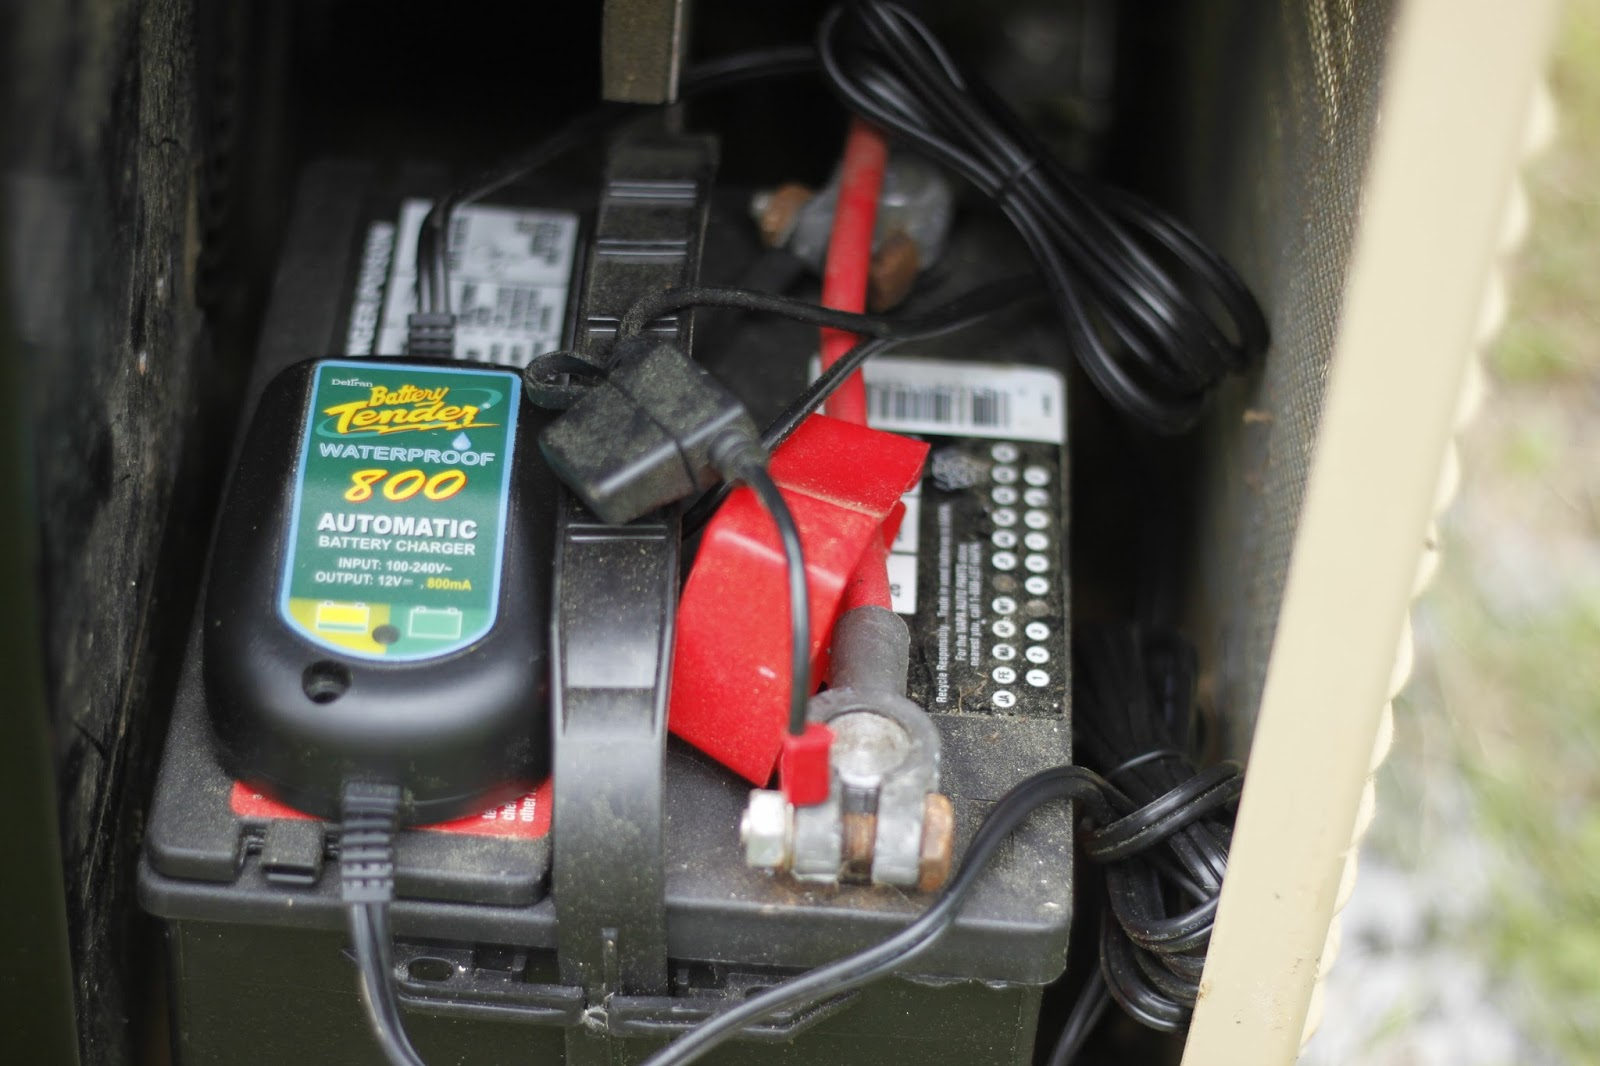 FET Tricks: Substitue Battery Charger for Generac Generator